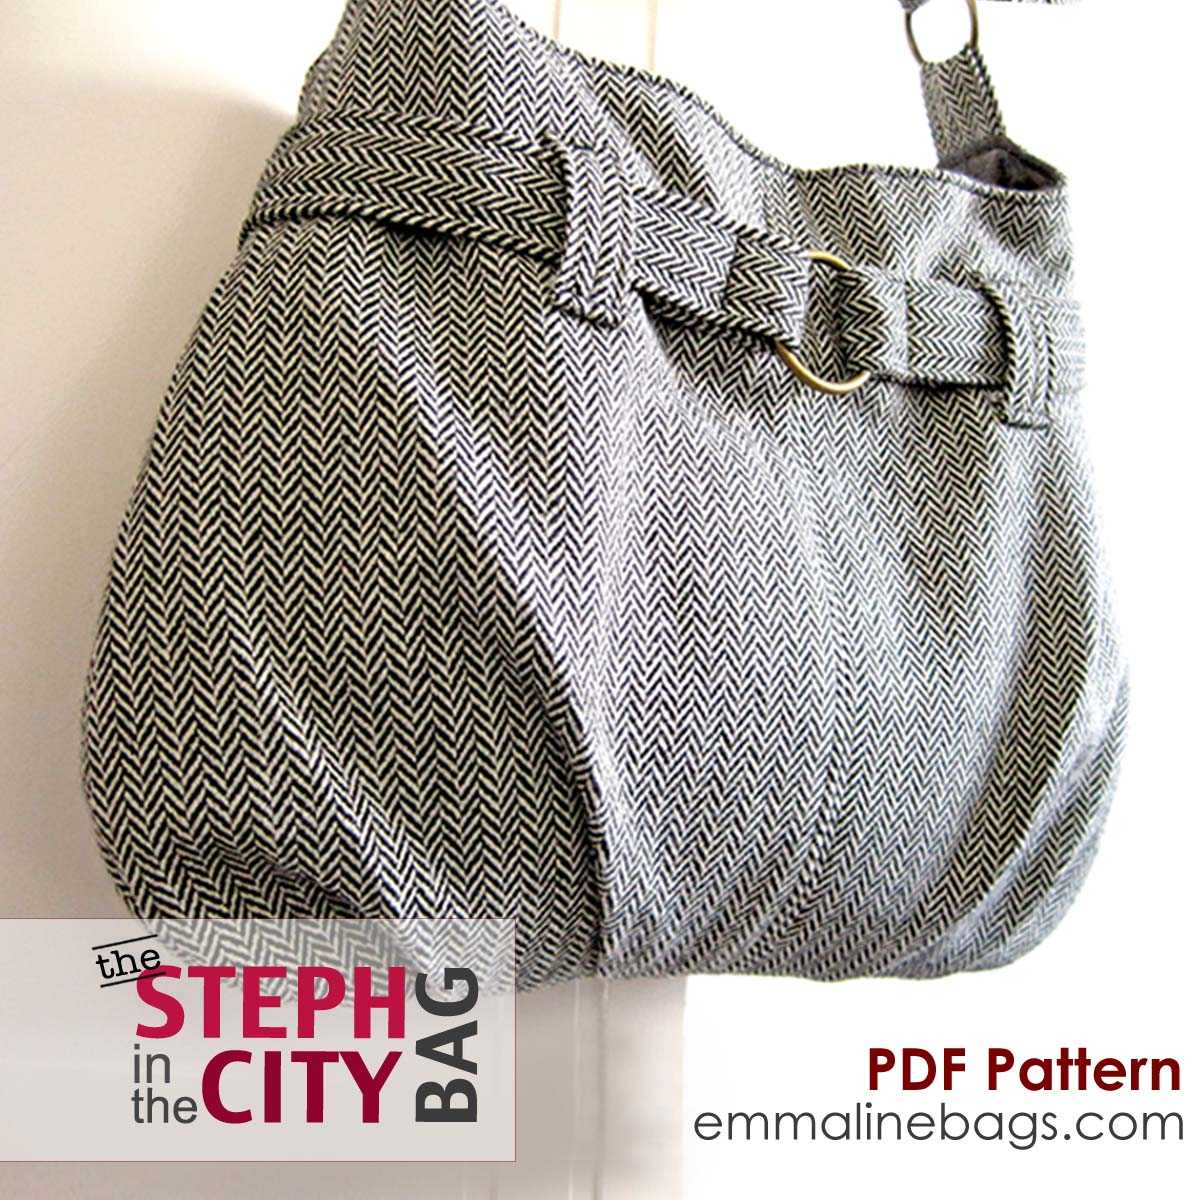 Pursepatterns : Bags: Sewing Patterns and Purse Supplies: A New Sewing Pattern ...